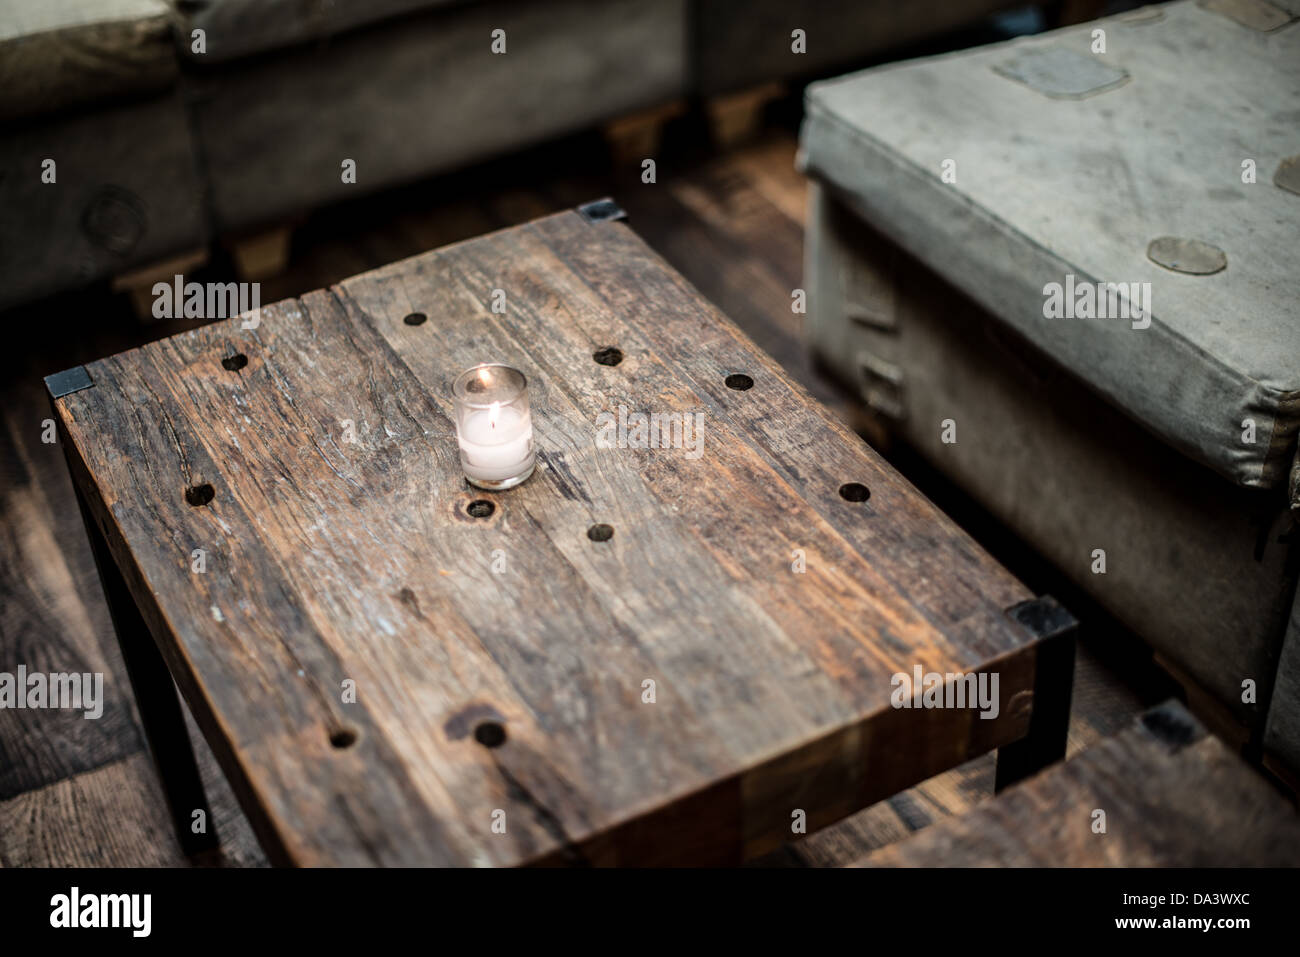 https www alamy com stock photo a small votive candle ssits on a rustic wooden table in a restaurant 57863860 html